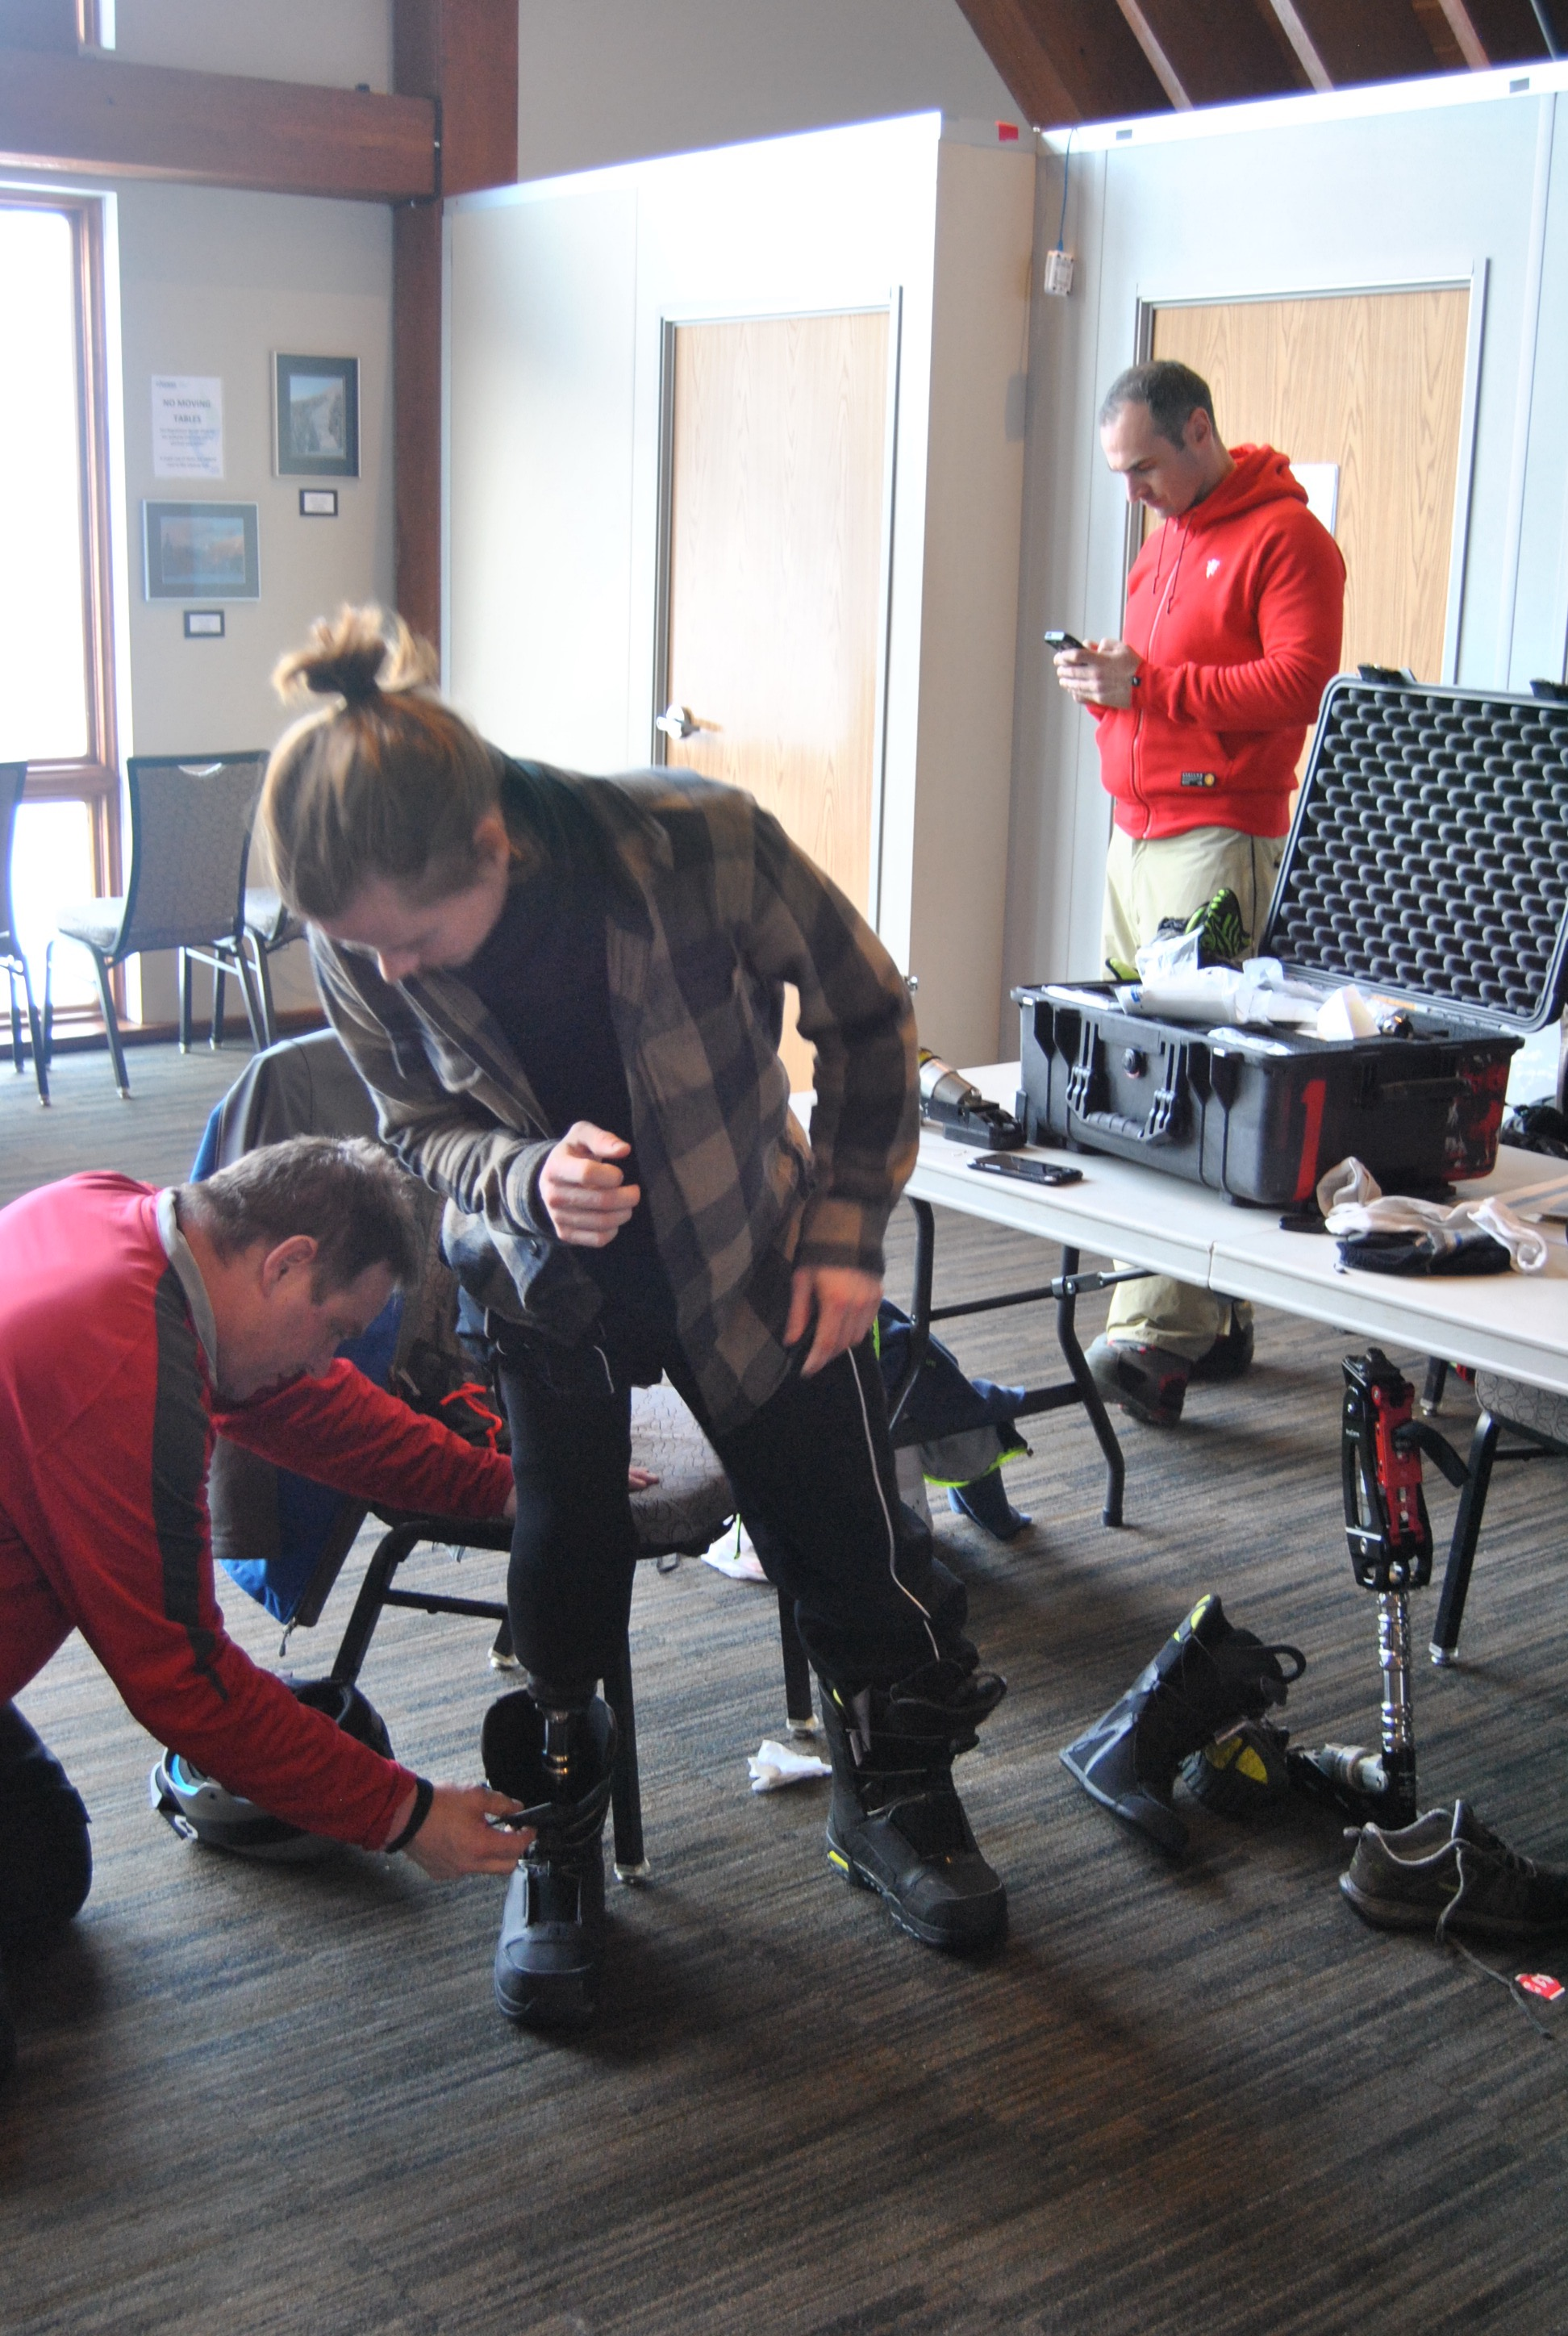 young man with transtibial prosthesis with snowboarding/skiing foot